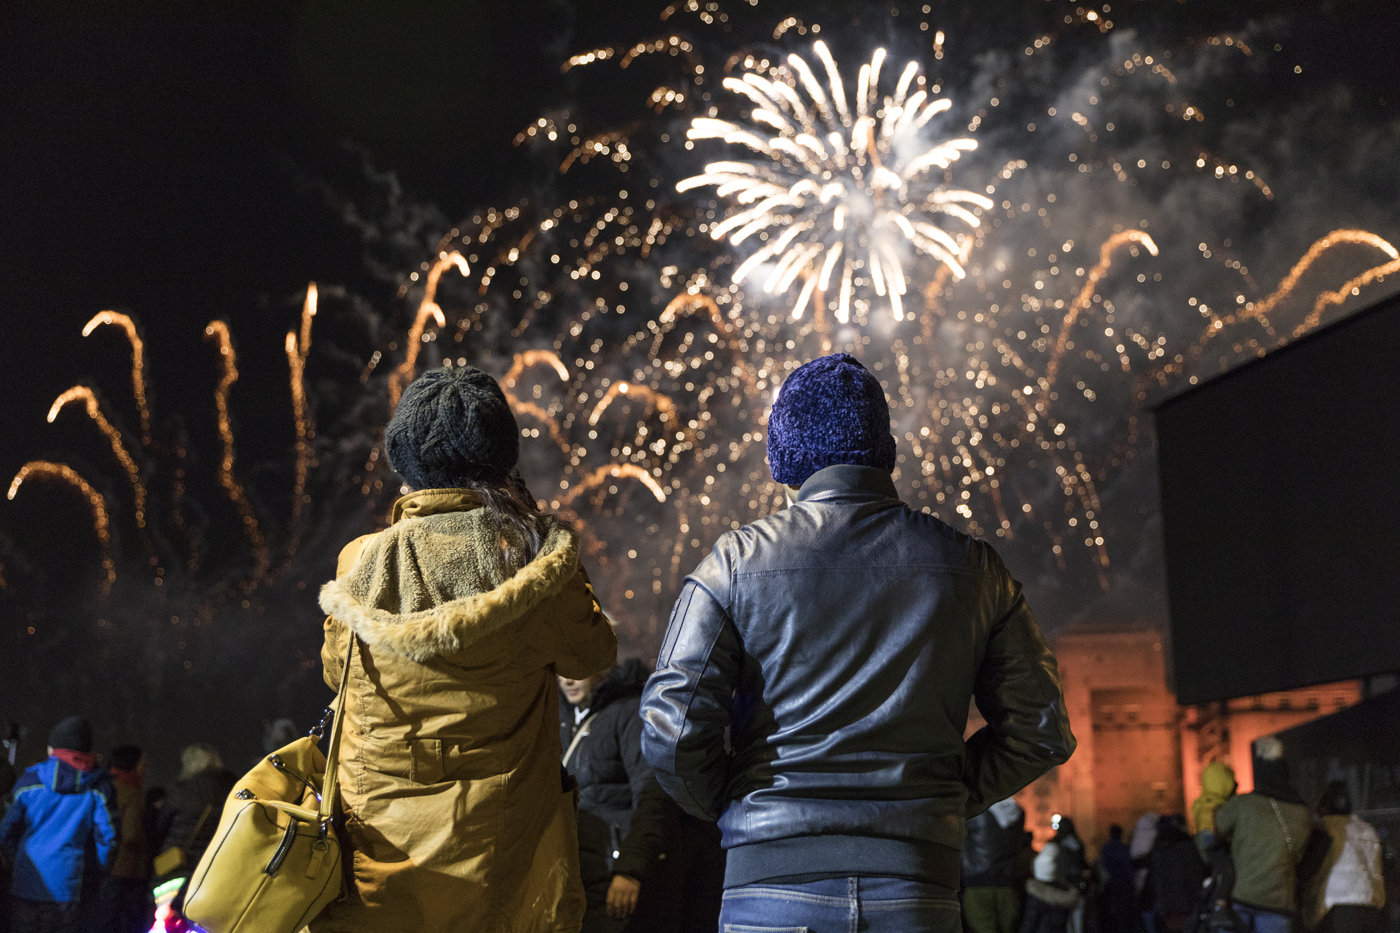 Two people with their backs to the camera watching fireworks